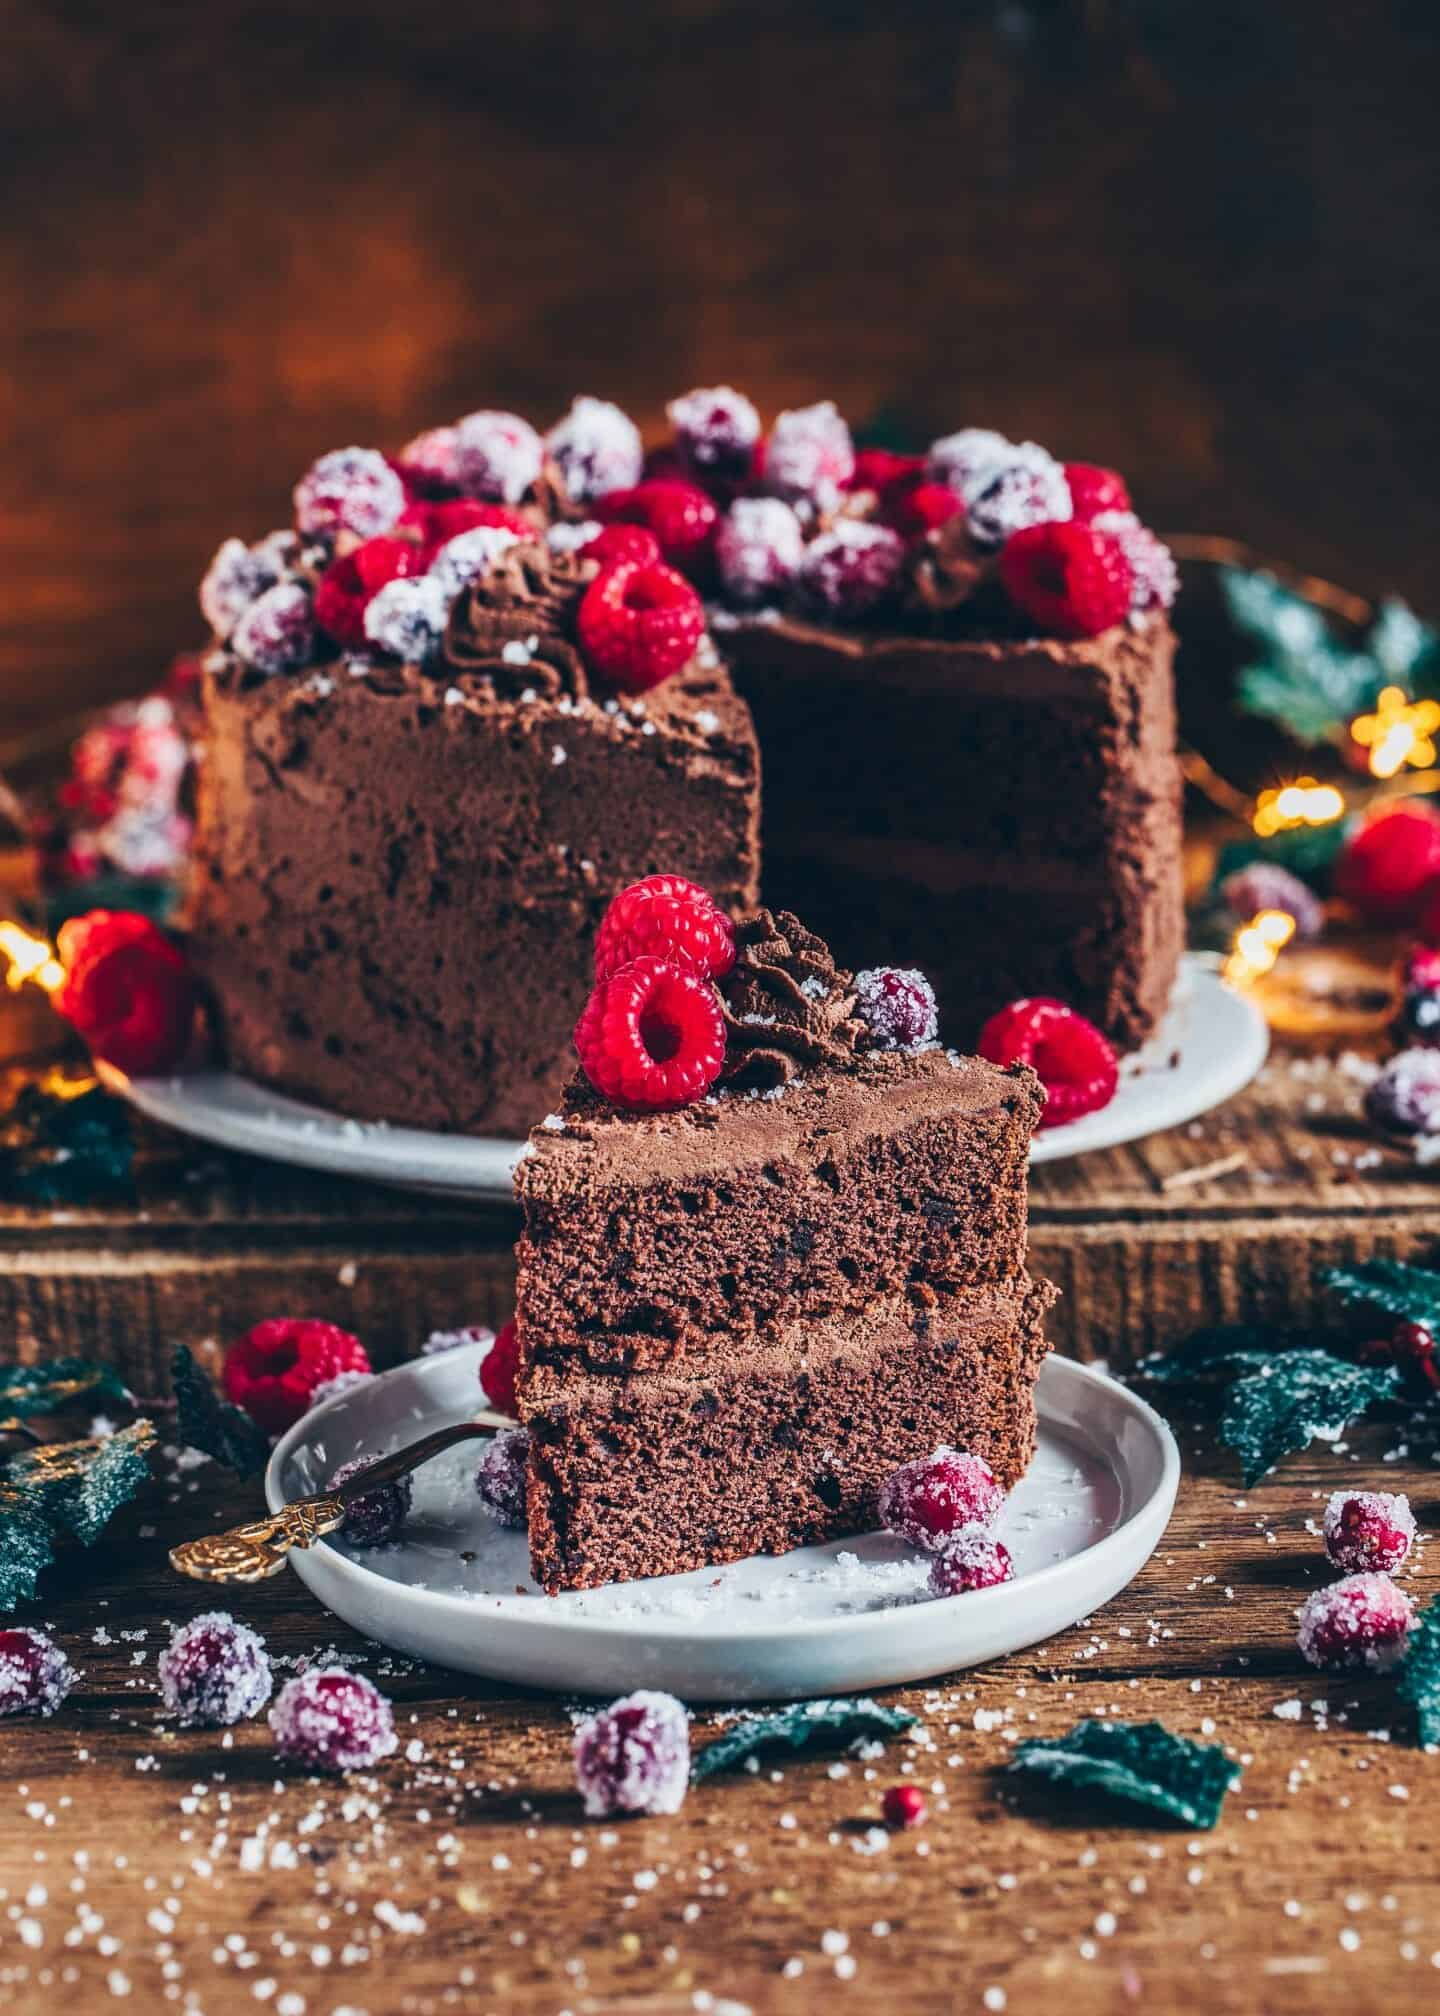 The Best Vegan Chocolate Cake made with simple ingredients in one bowl. It's incredibly delicious, rich with chocolate flavor, and can be made gluten-free. The perfect dessert for any occasion!